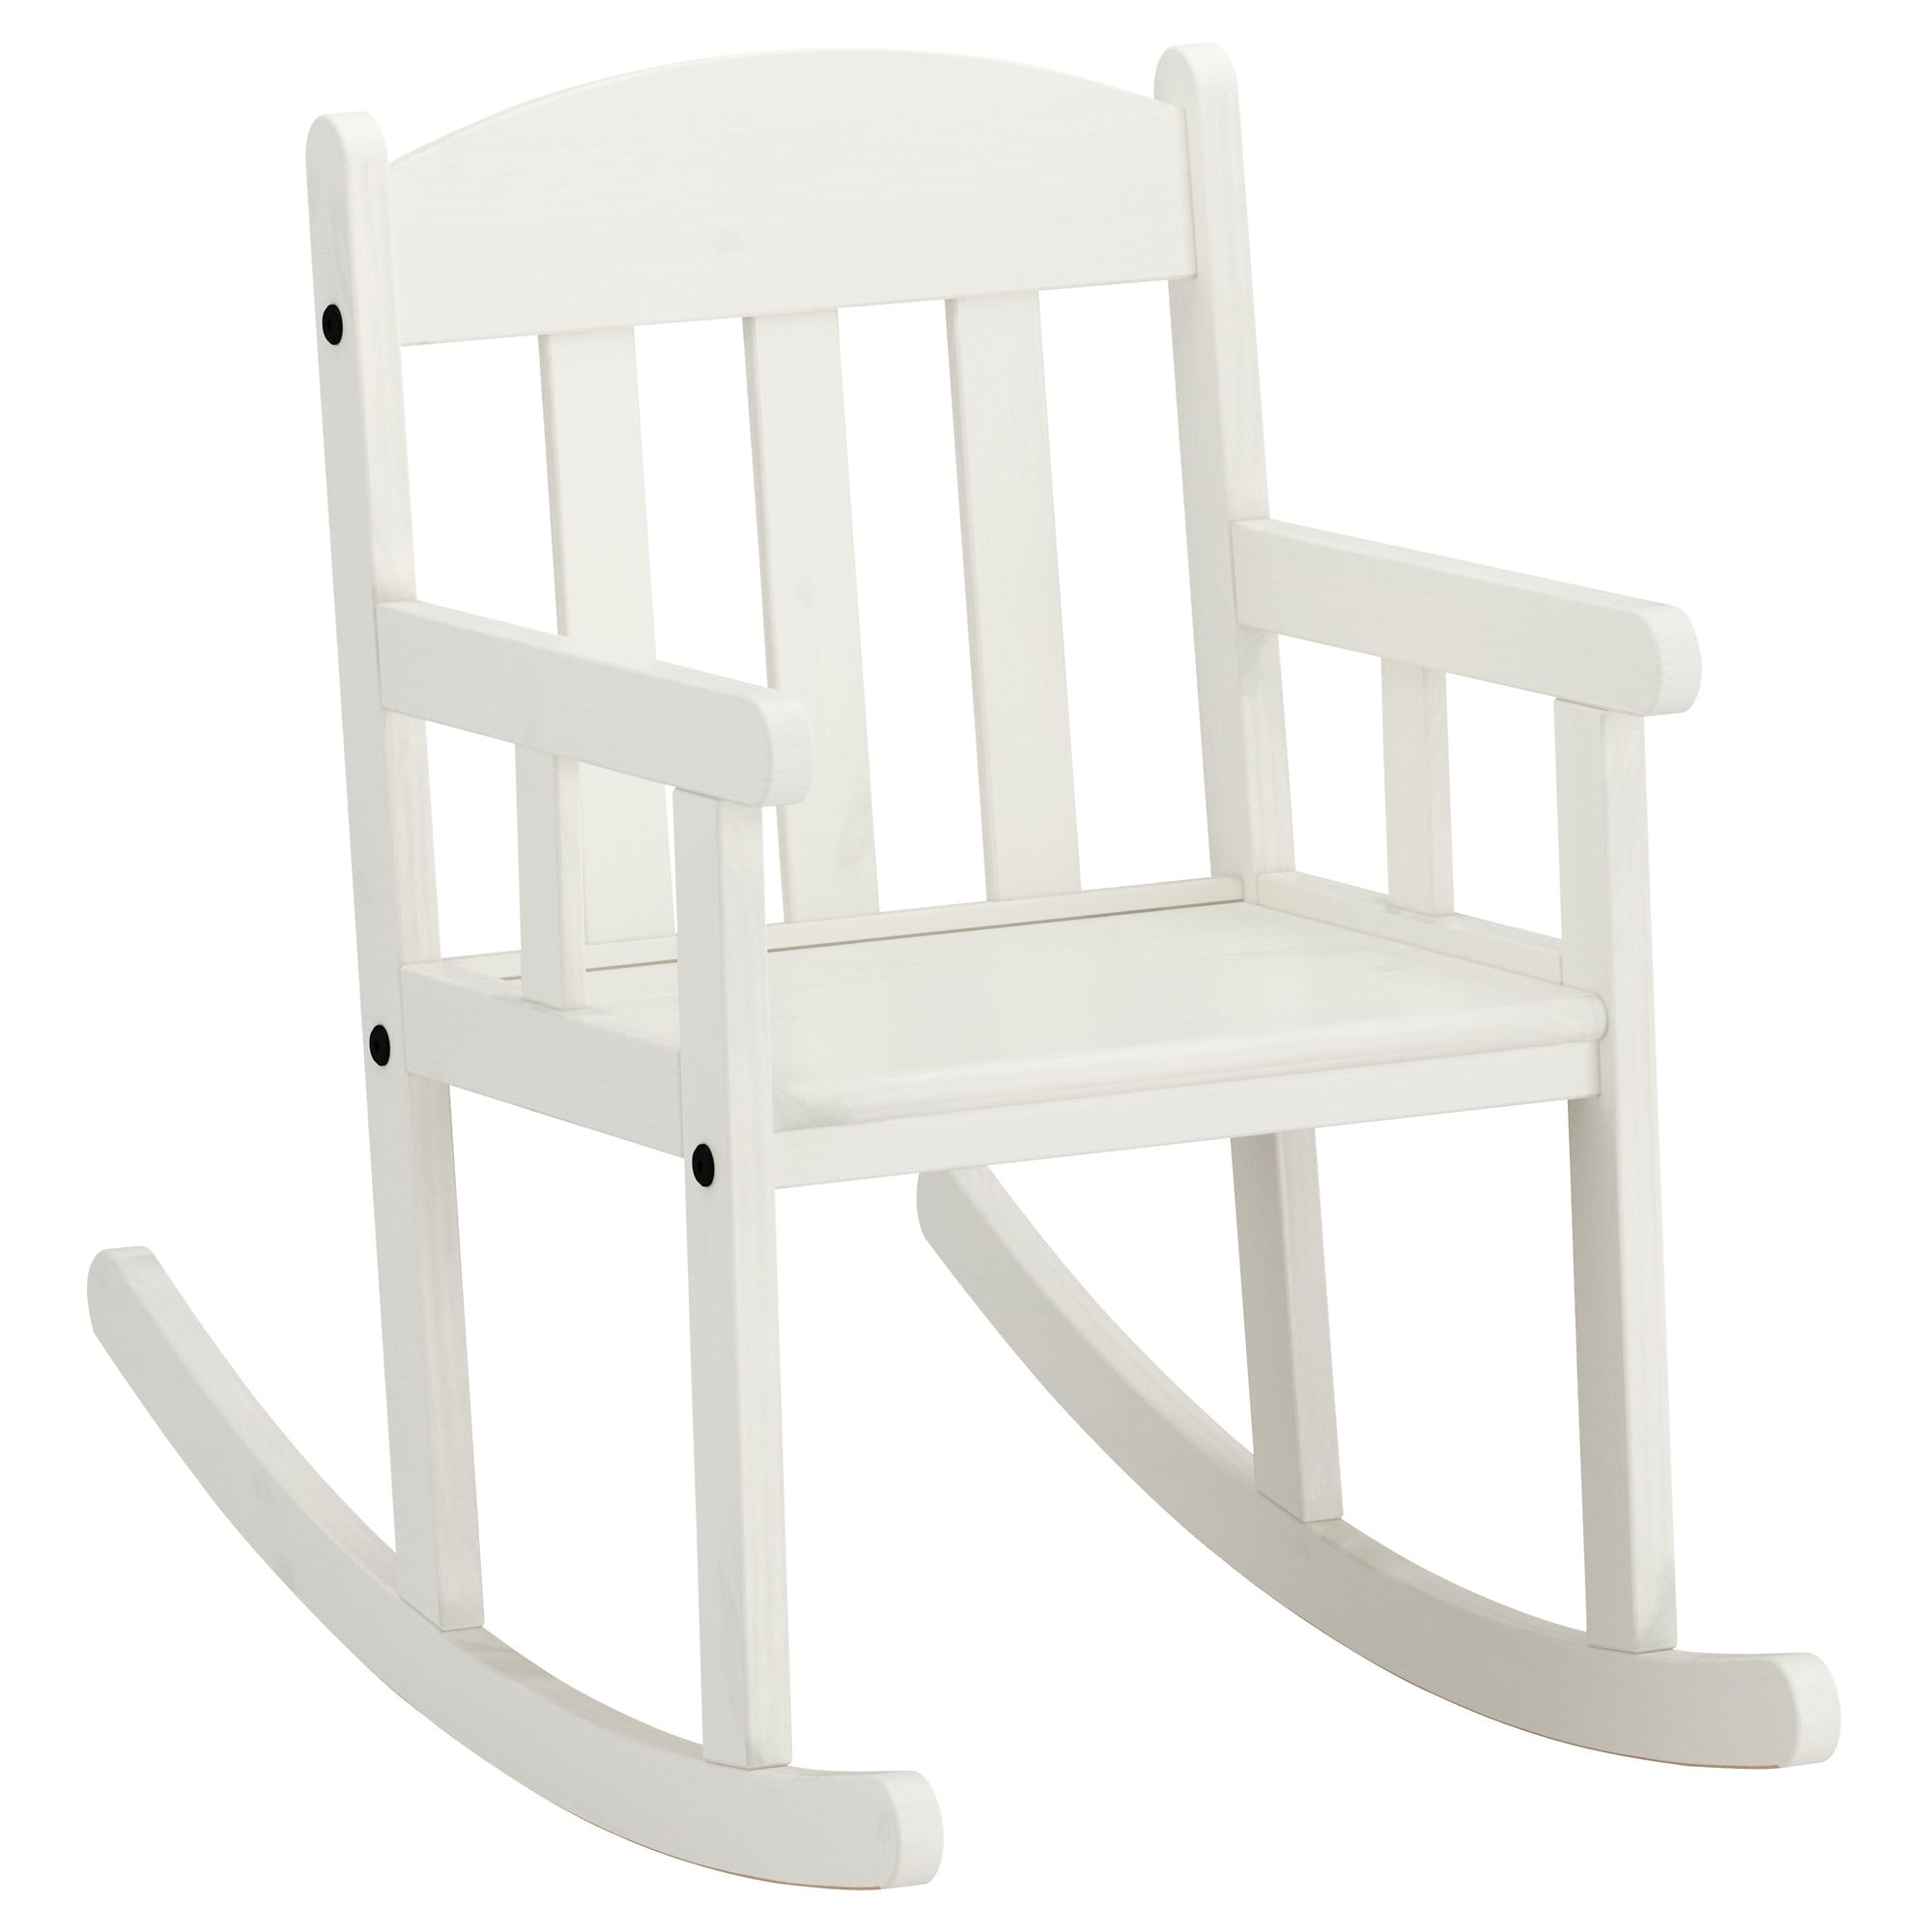 Rocking Chairs For Toddlers Within Popular Sundvik Childrens Rocking Chair – Ikea (View 4 of 15)